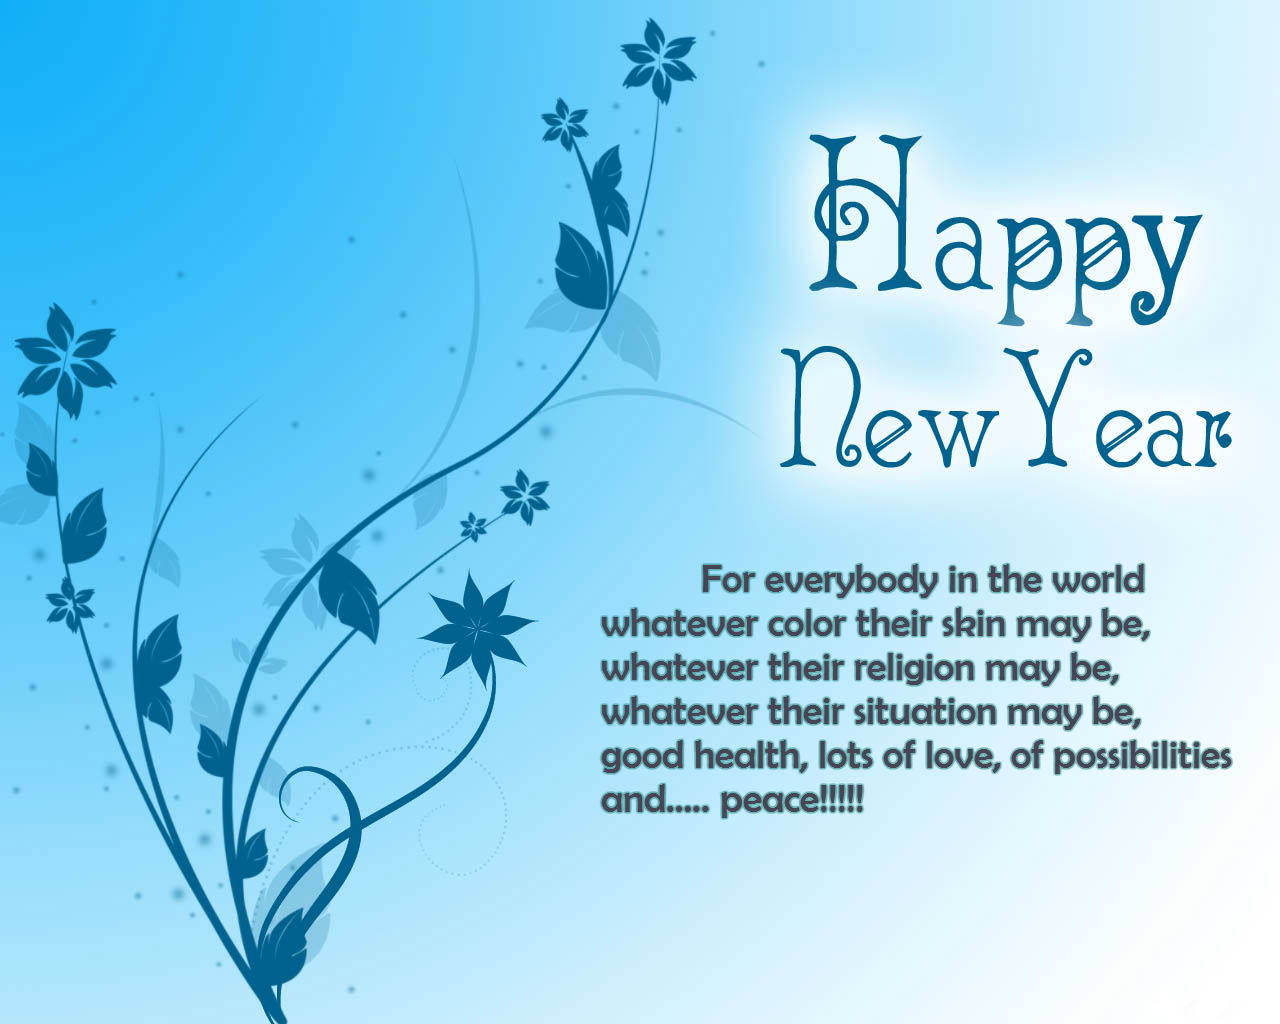 Happy New Year 2016 ex girlfriend wishes greeting cards - Happy New Year 2016 Pics images sms wishes